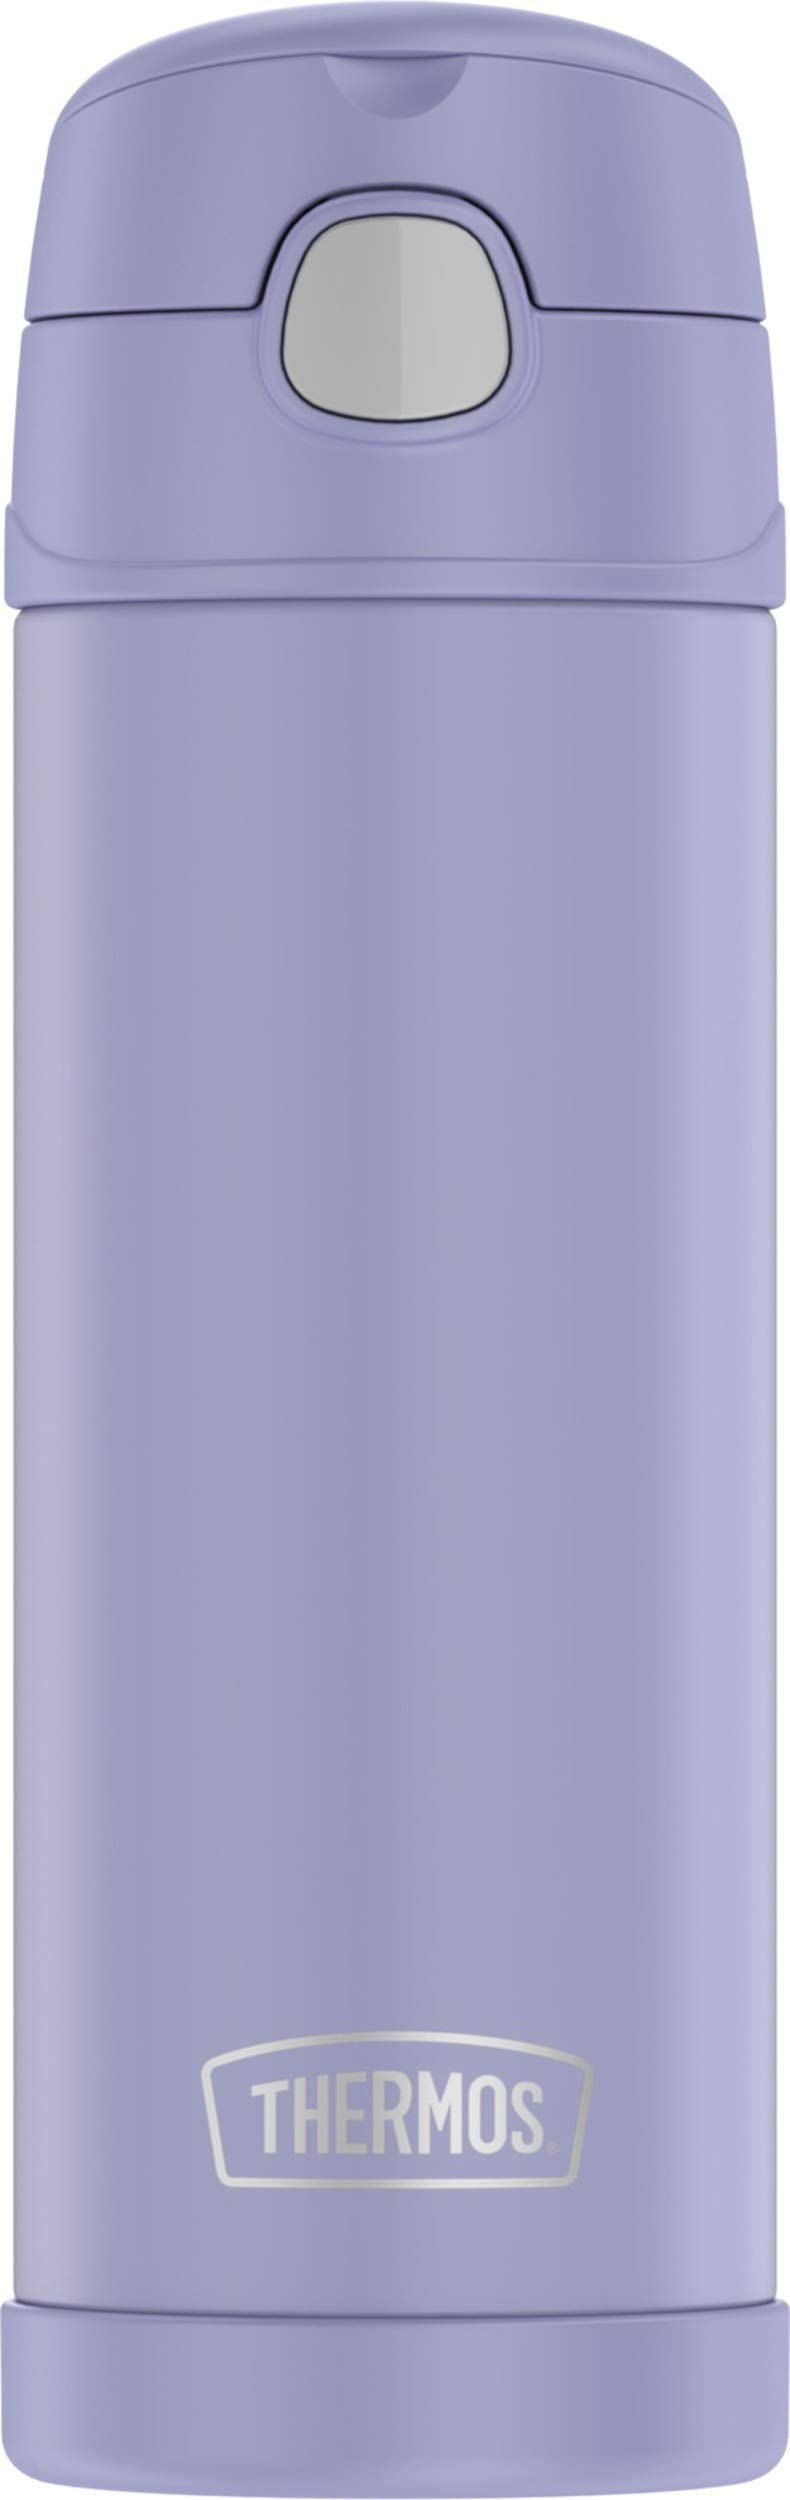 Thermos Funtainer 16 Ounce Bottle, Lavender by Thermos